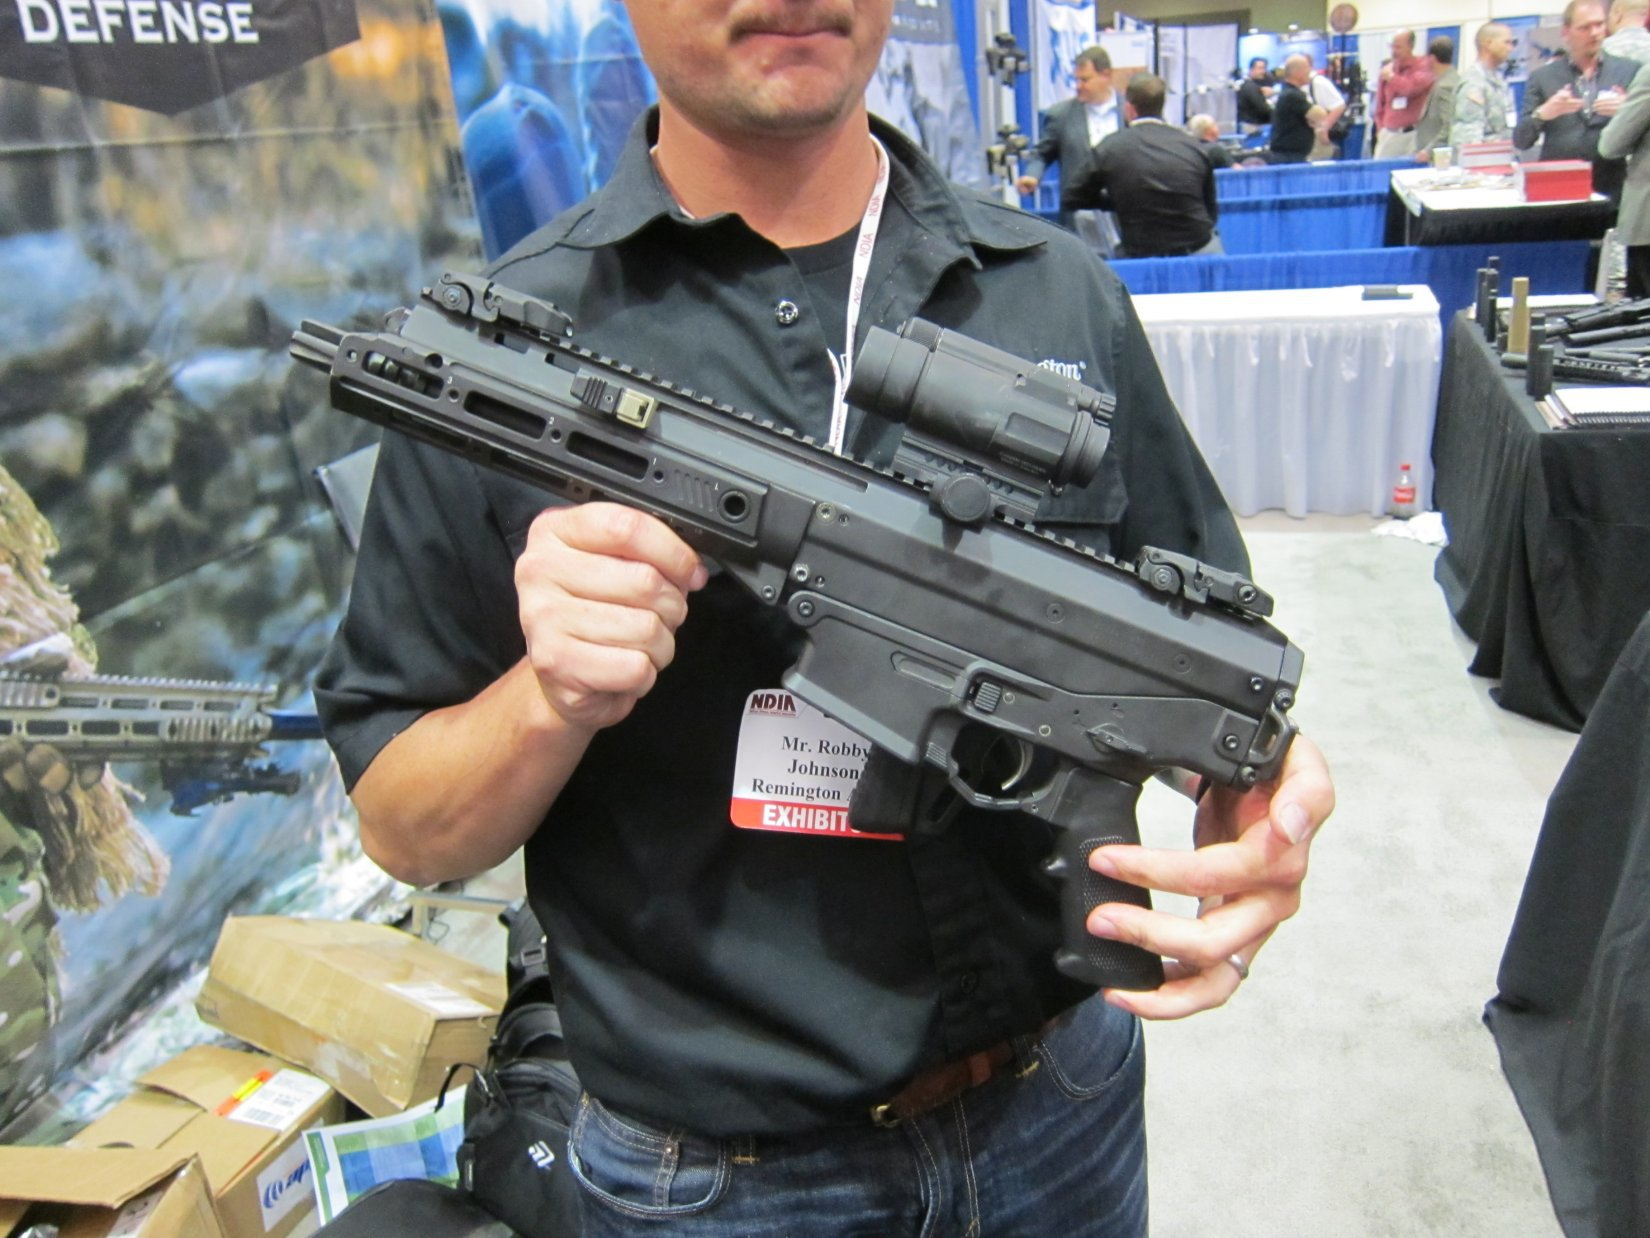 Remington ACR PDW SBR Adaptive Combat Rifle Personal Defense Weapon Short Barreled Rifle Robby Johnson NDIA Joint Armaments 2012 DefenseReview.com DR 4 Remington ACR PDW SBR (Adaptive Combat Rifle Personal Defense Weapon Short Barreled Rifle) and Remington Individual Carbine (IC) Candidate: Remington Defense Assault Rifles/Carbines/PDWs at NDIA Joint Armaments Conference 2012 (Video!)